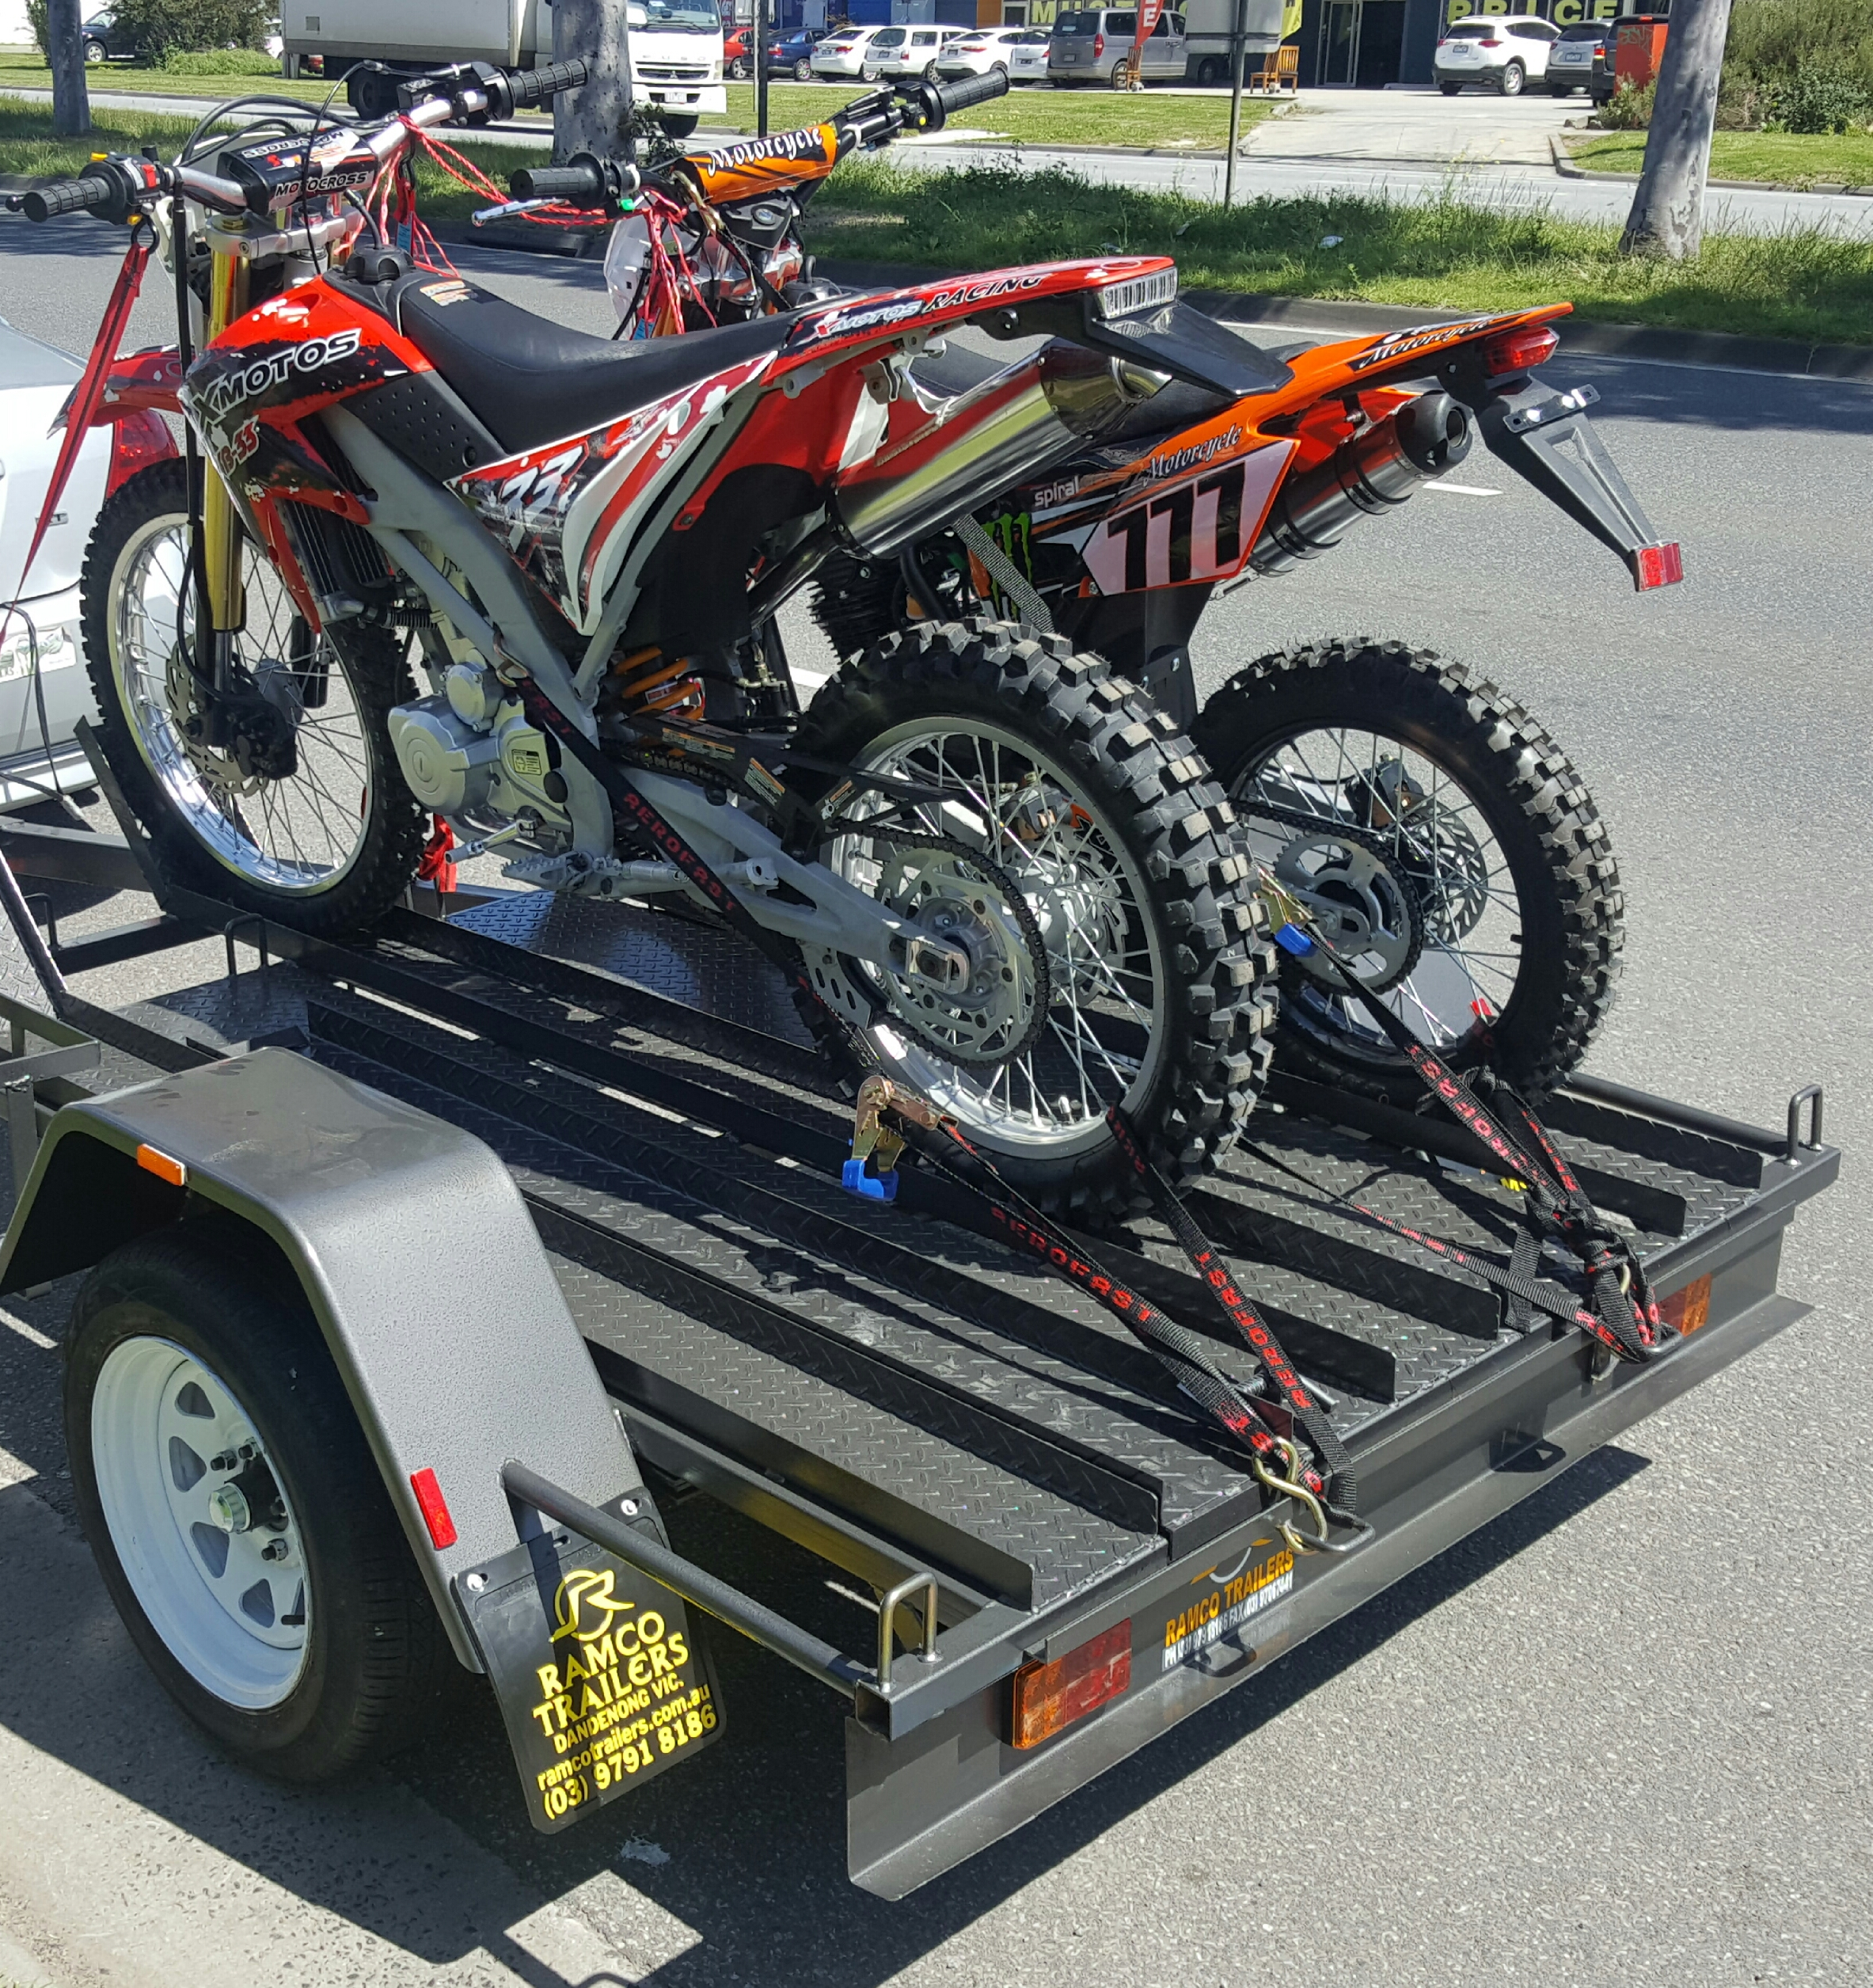 Motorbike Trailers For Sale Melbourne Vic Ramco Trailers